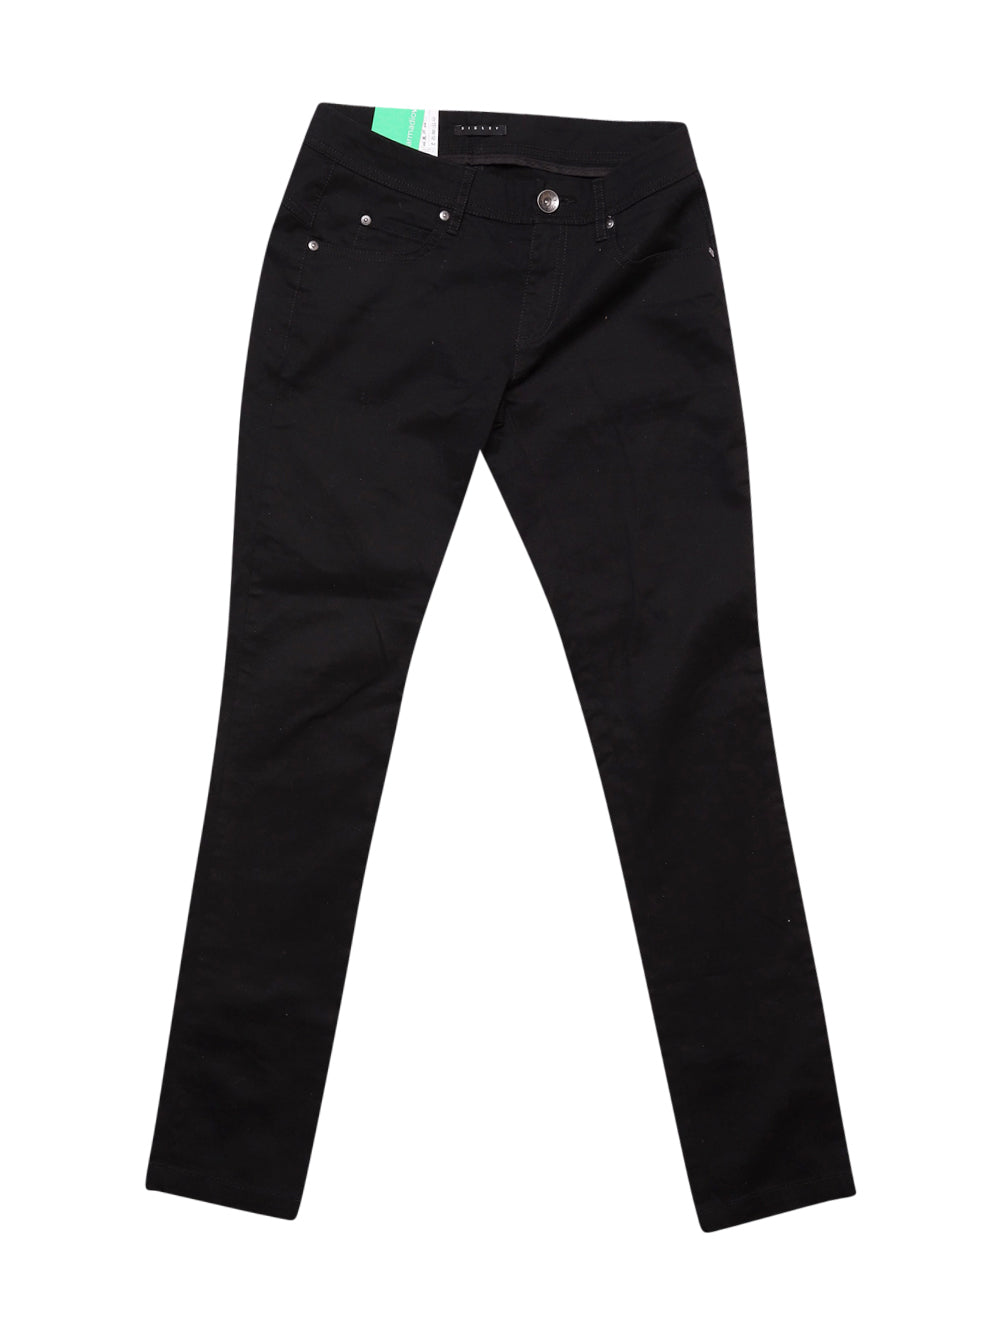 Front photo of Preloved Sisley Black Woman's trousers - size 6/XS